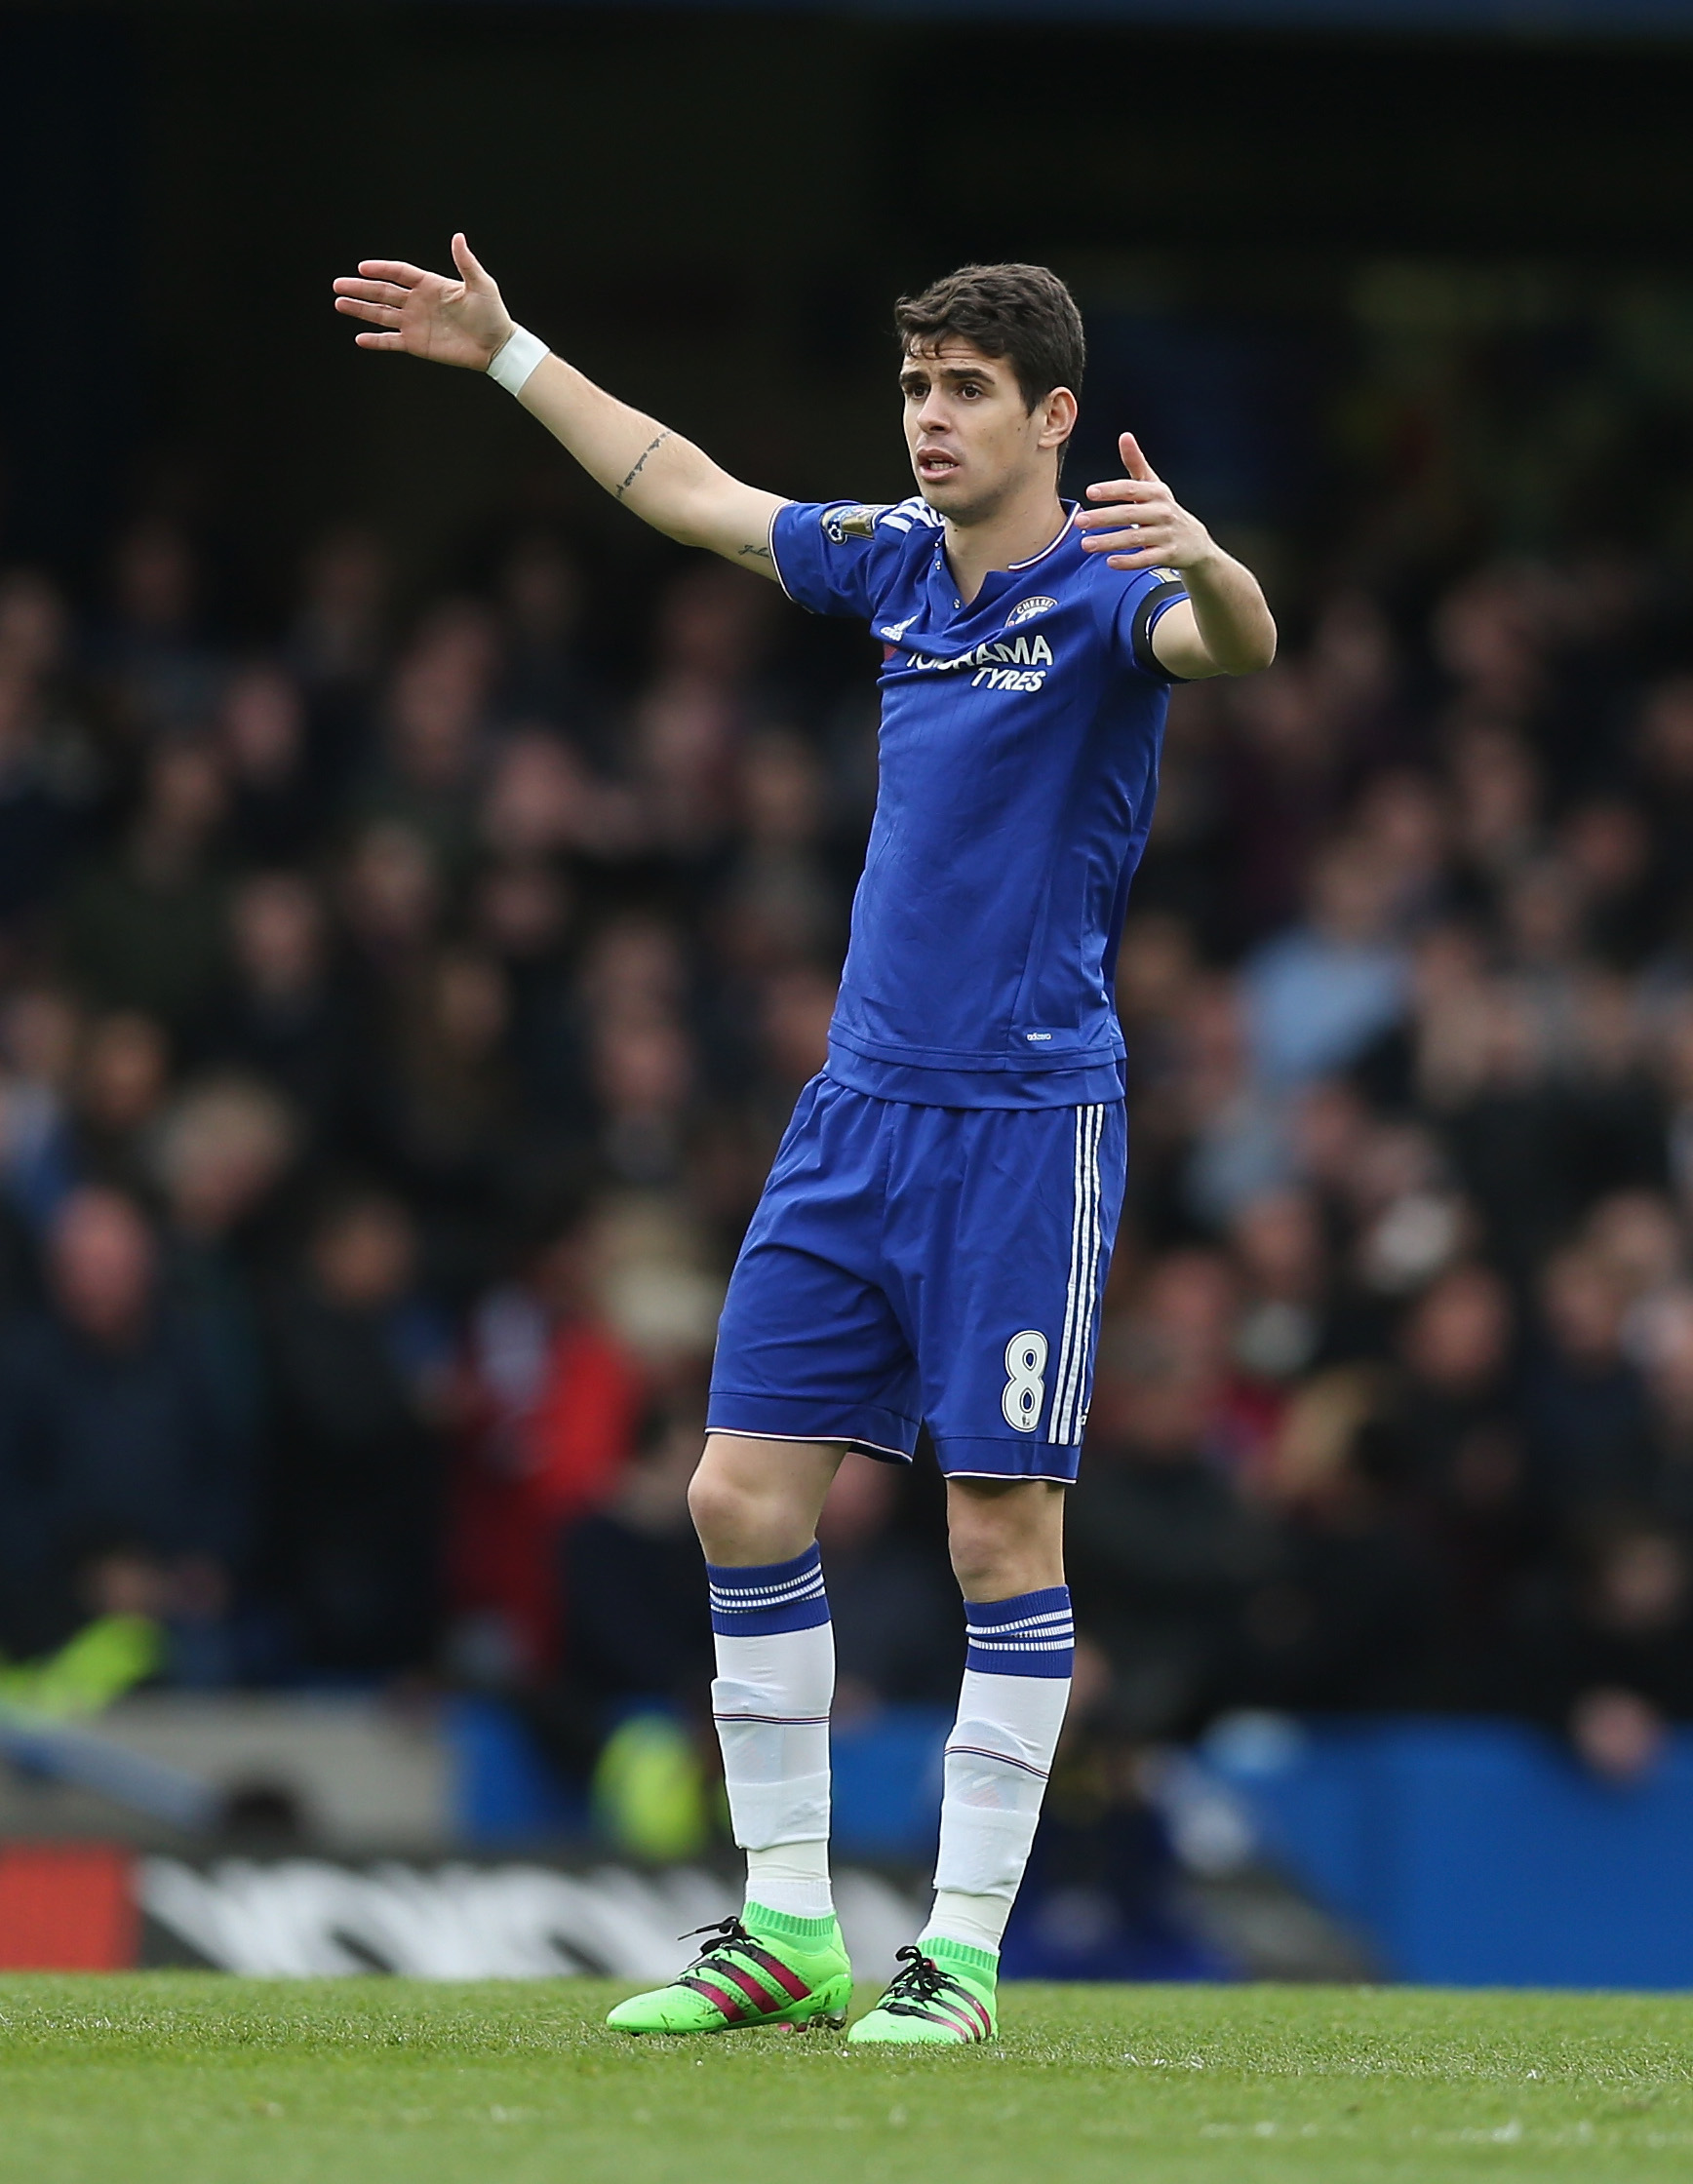 Reports: Juventus renew interest in Chelsea midfielder; Abramovich ready to sell?